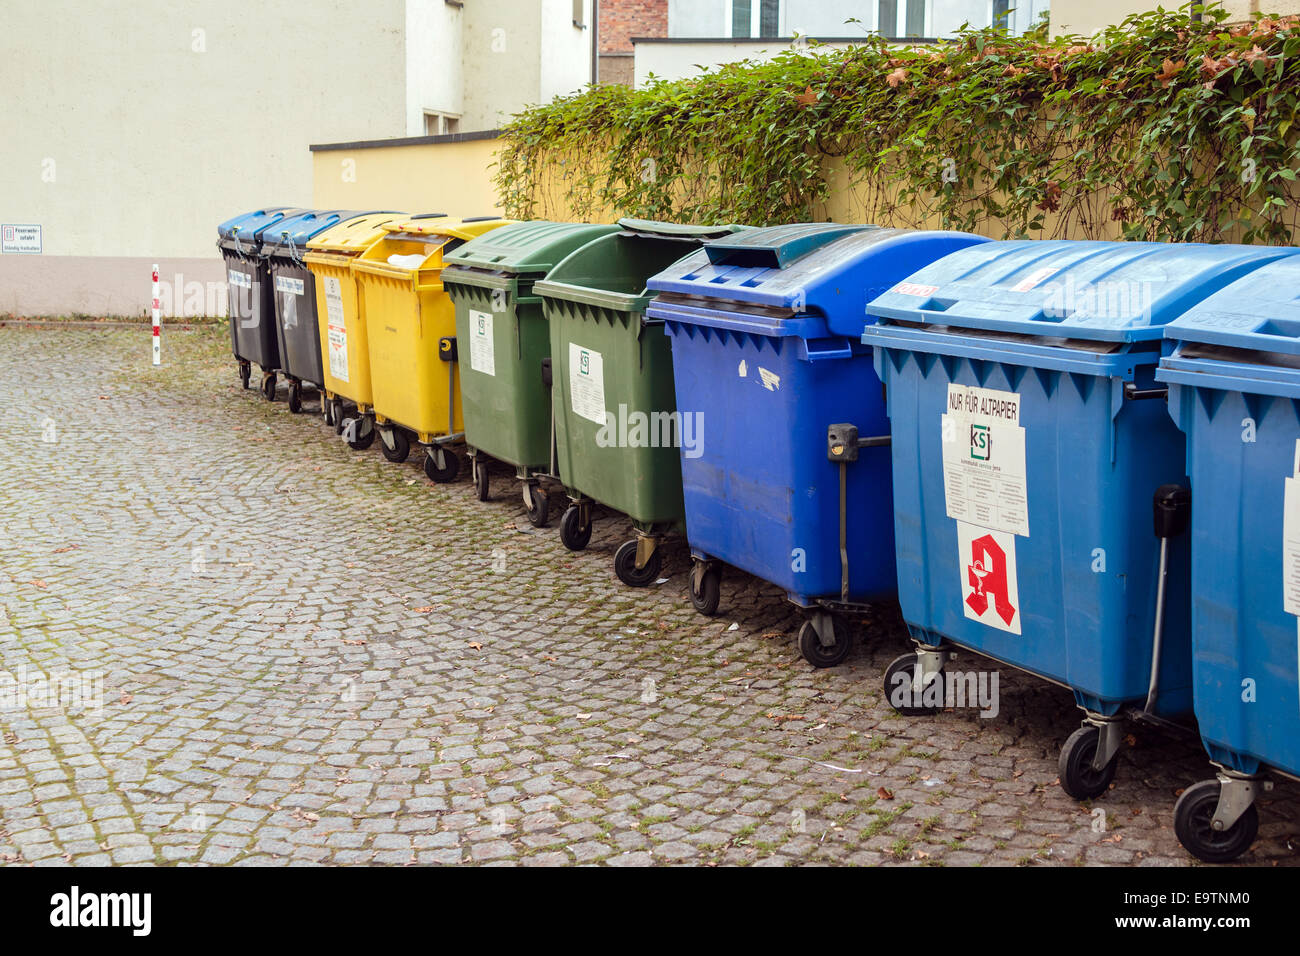 Recycling containers, Germany - Stock Image